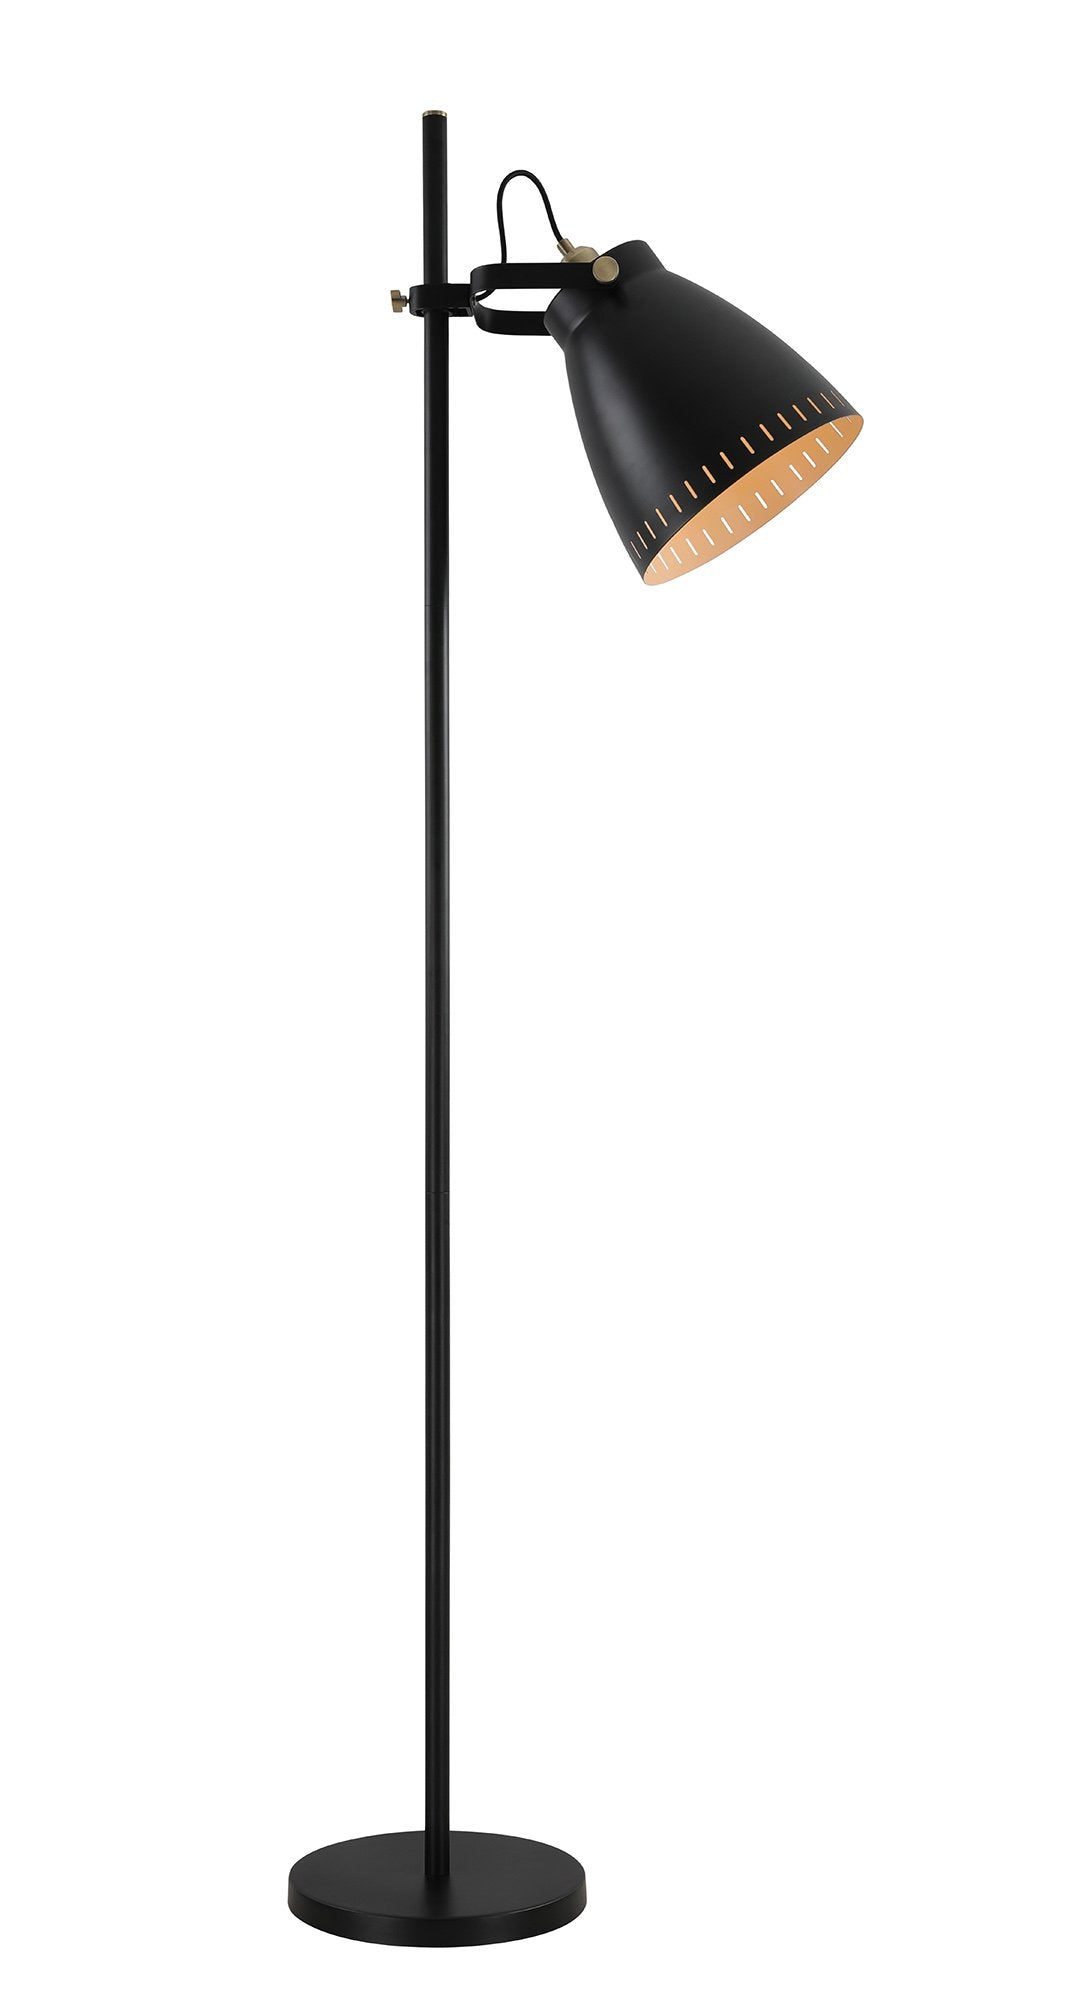 Factory Adjustable Floor Lamp, 1 x E27, Matt Black/Antique Brass/Khaki